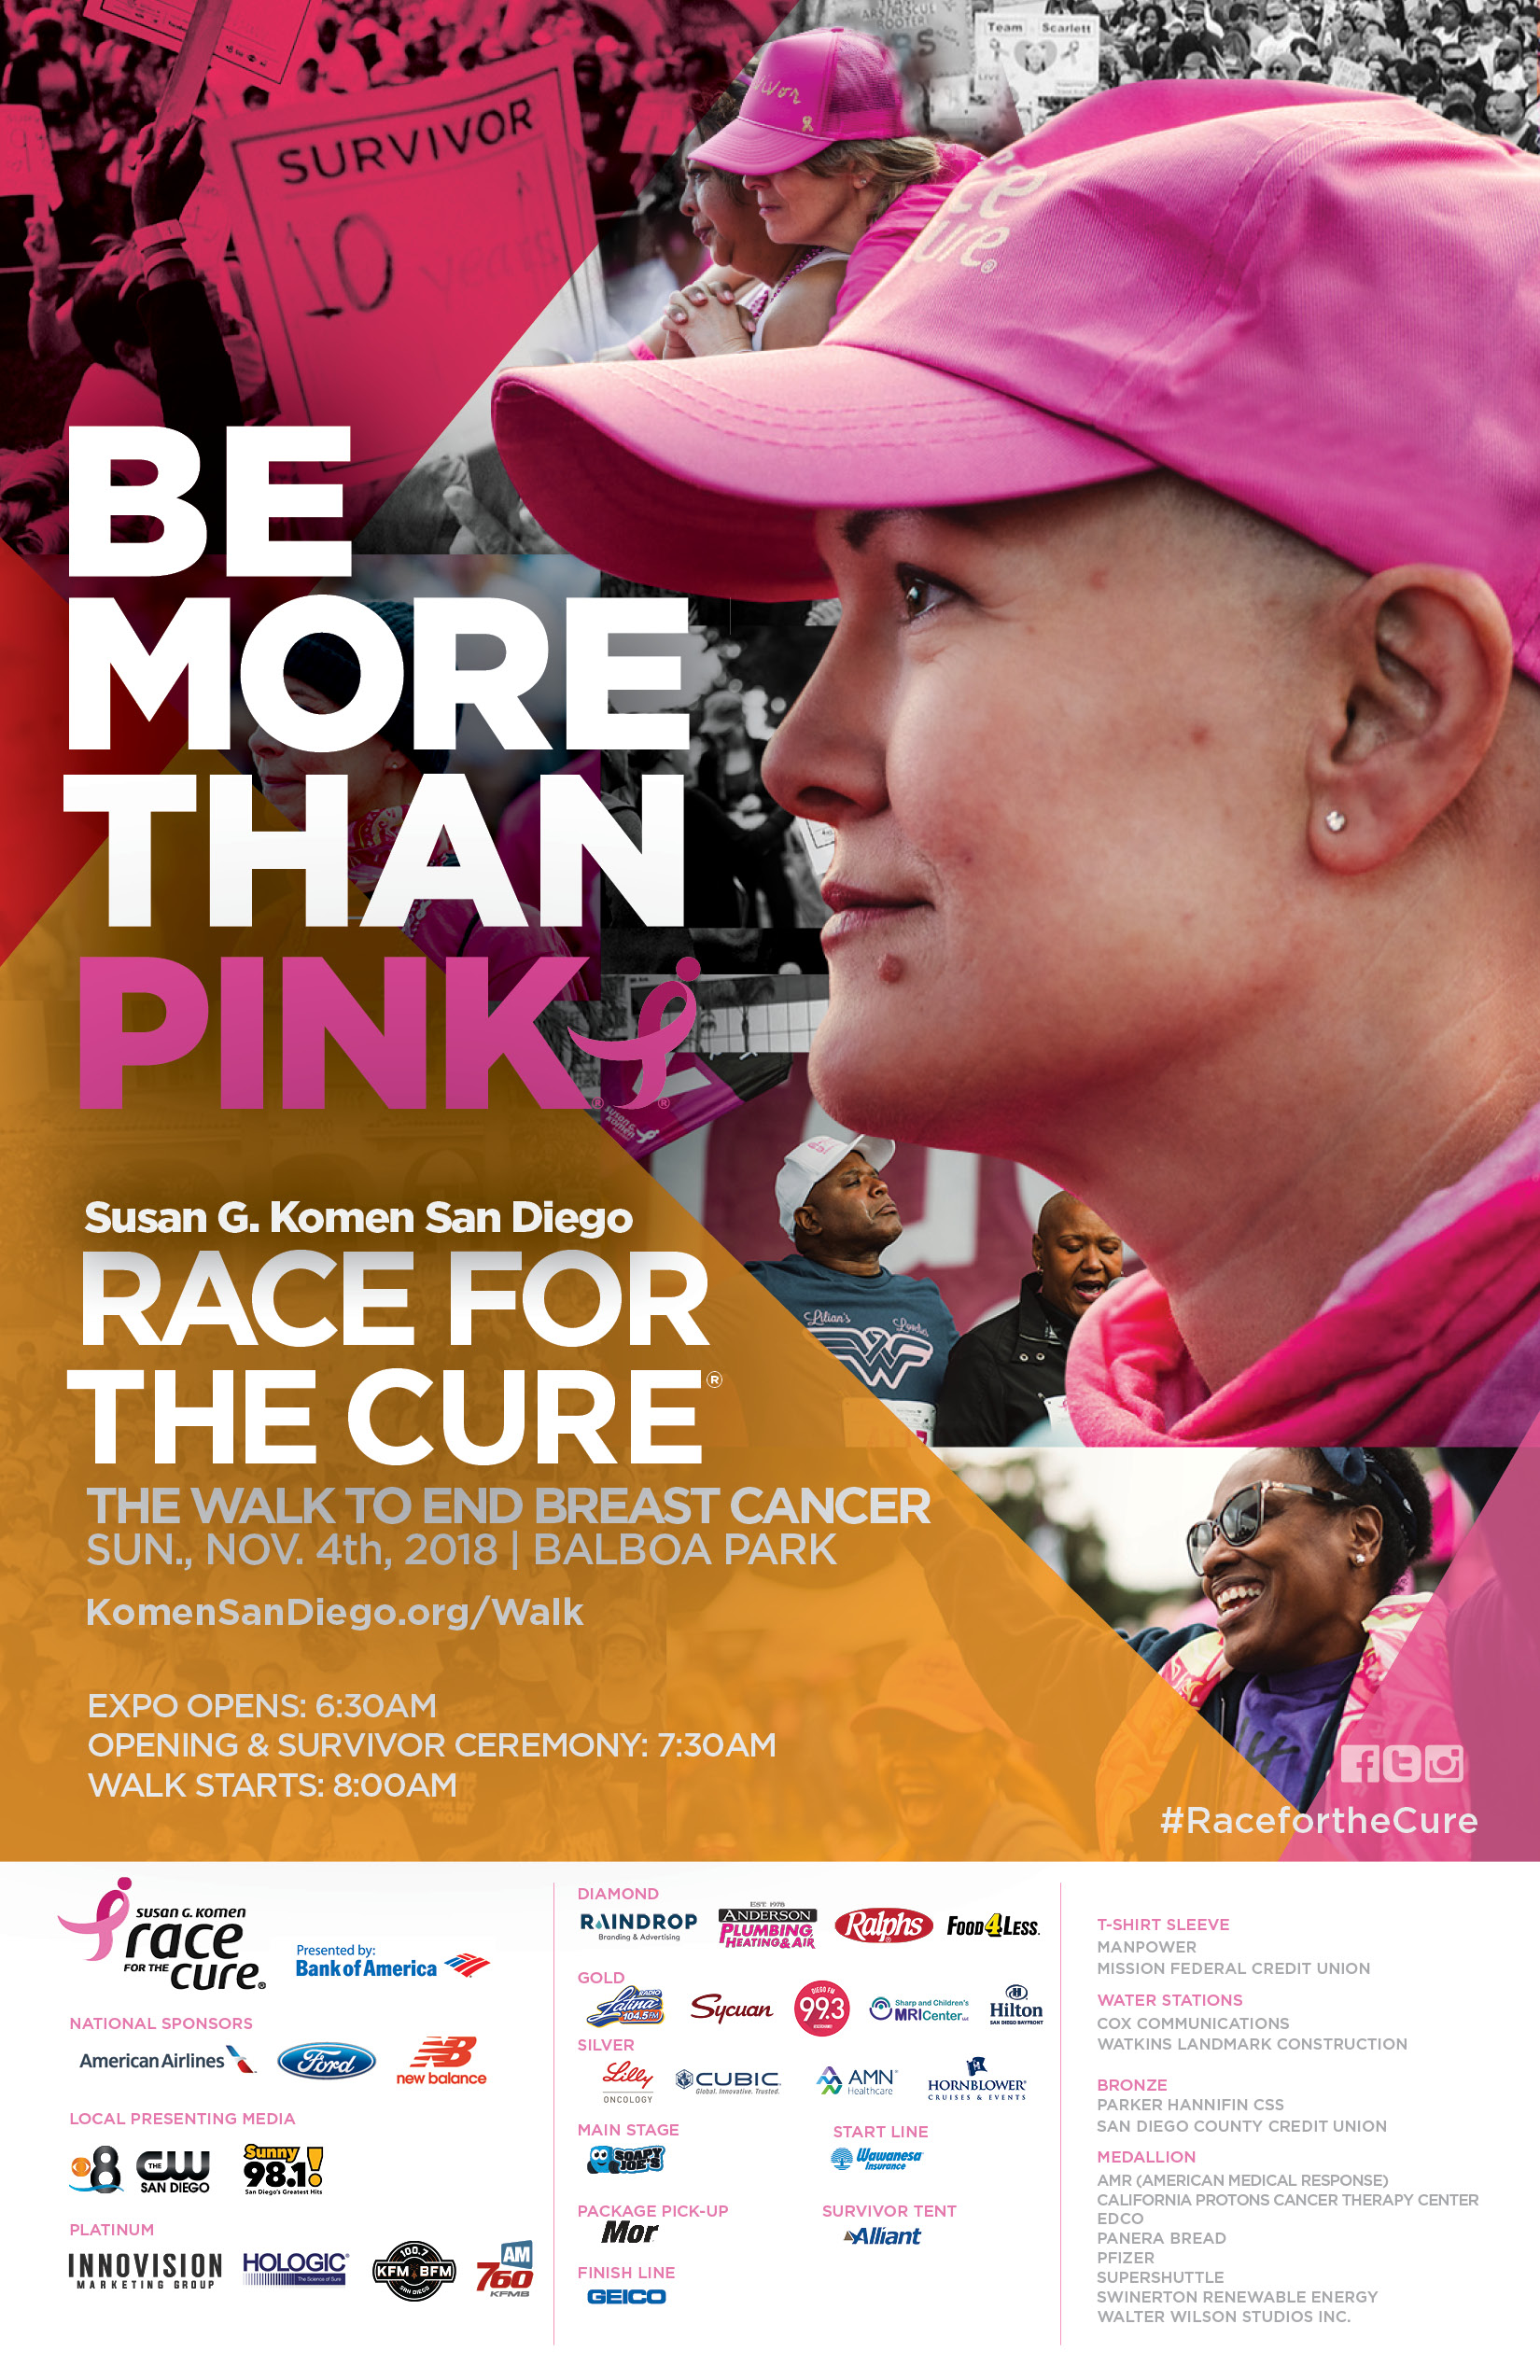 Susan G. Komen Race for the Cure Poster